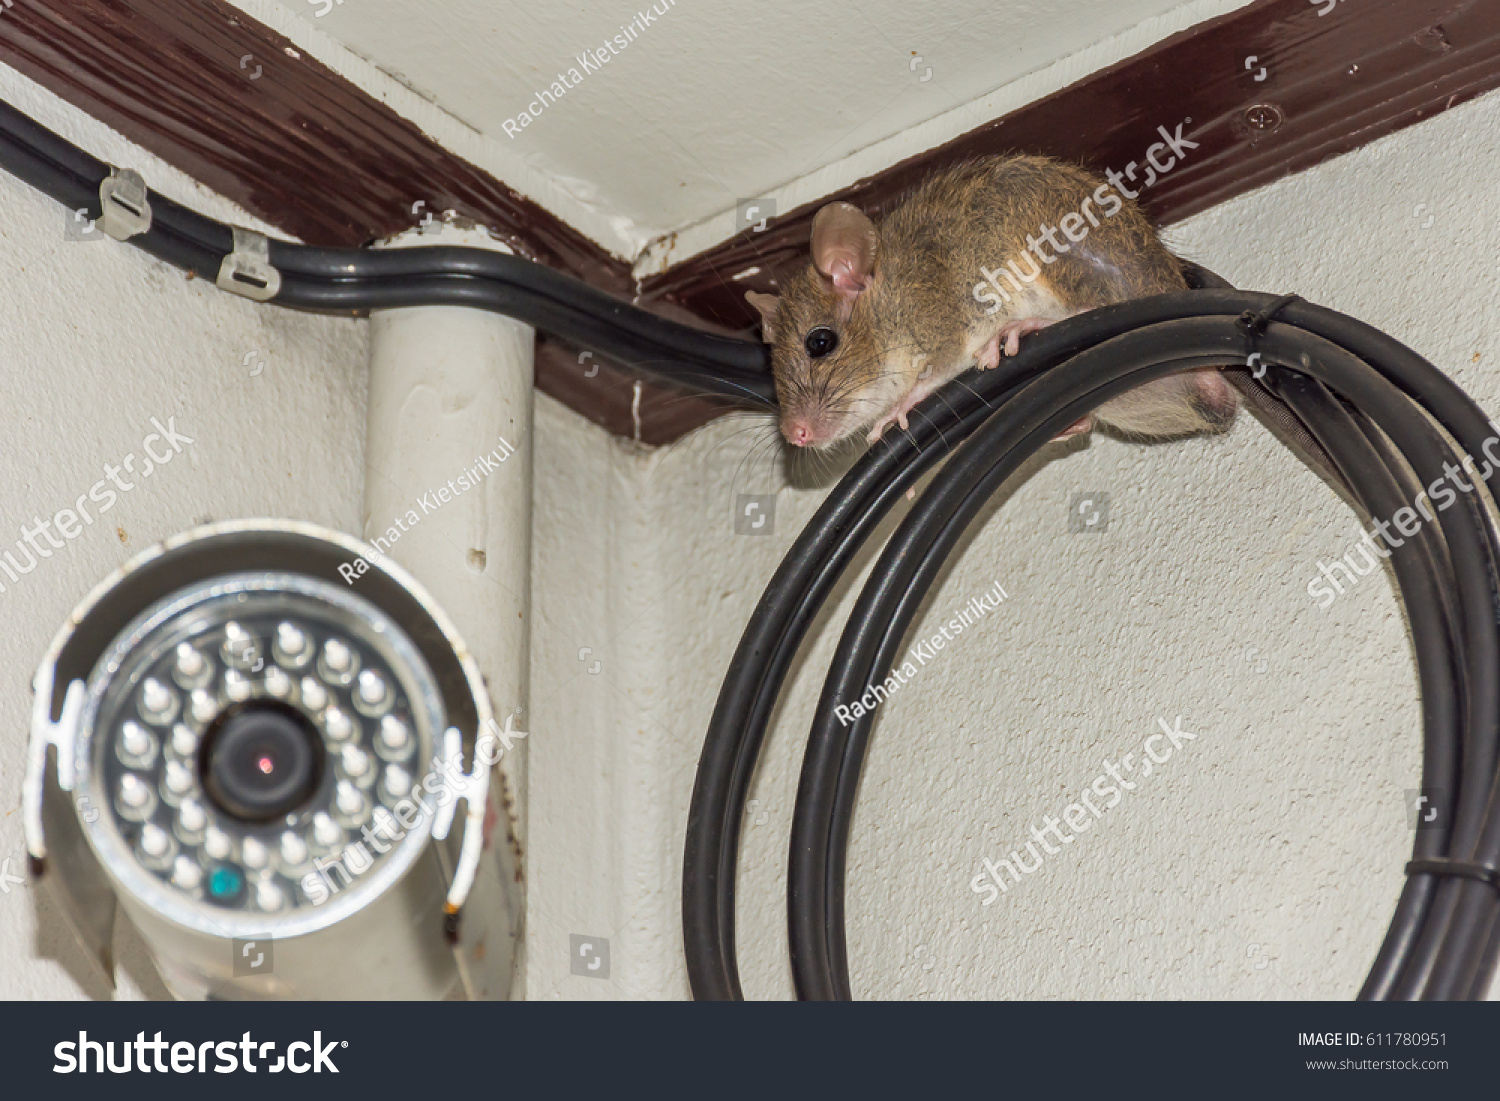 House Brown Rat On Fiberoptic Cable Stock Photo Edit Now 611780951 Wiring For Fiber Optics Optic Behind Security Camera Cctv